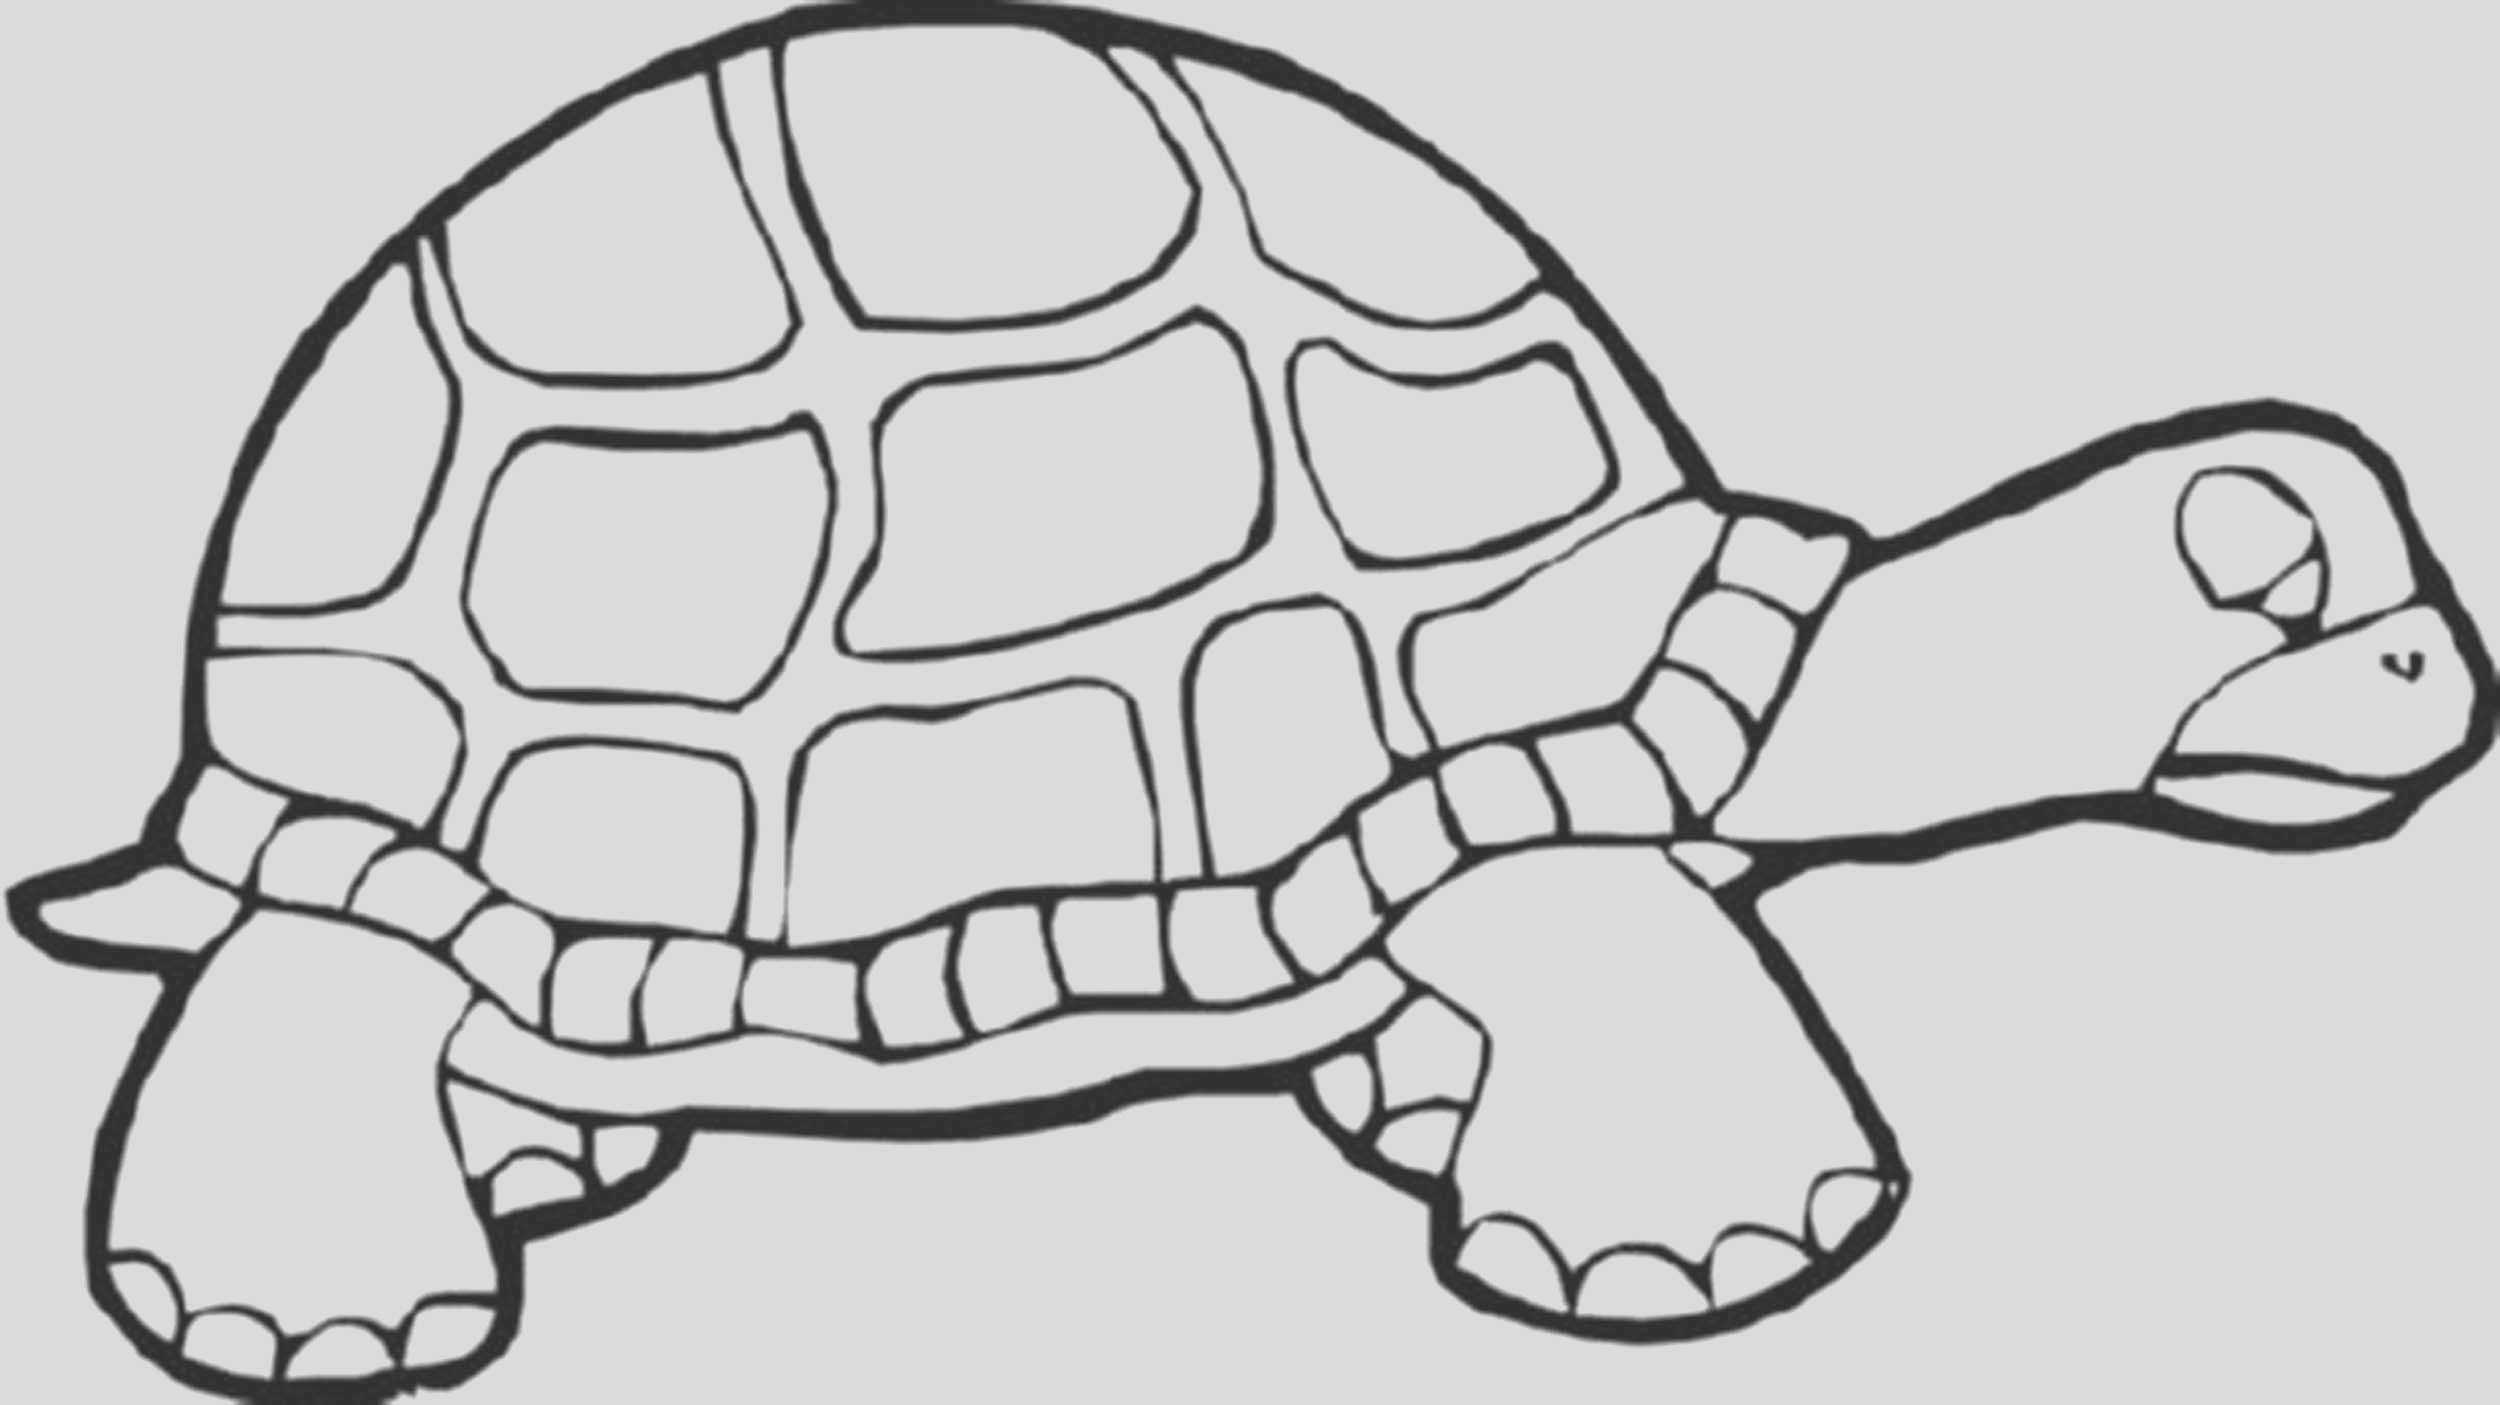 turtle coloring pages educational tool